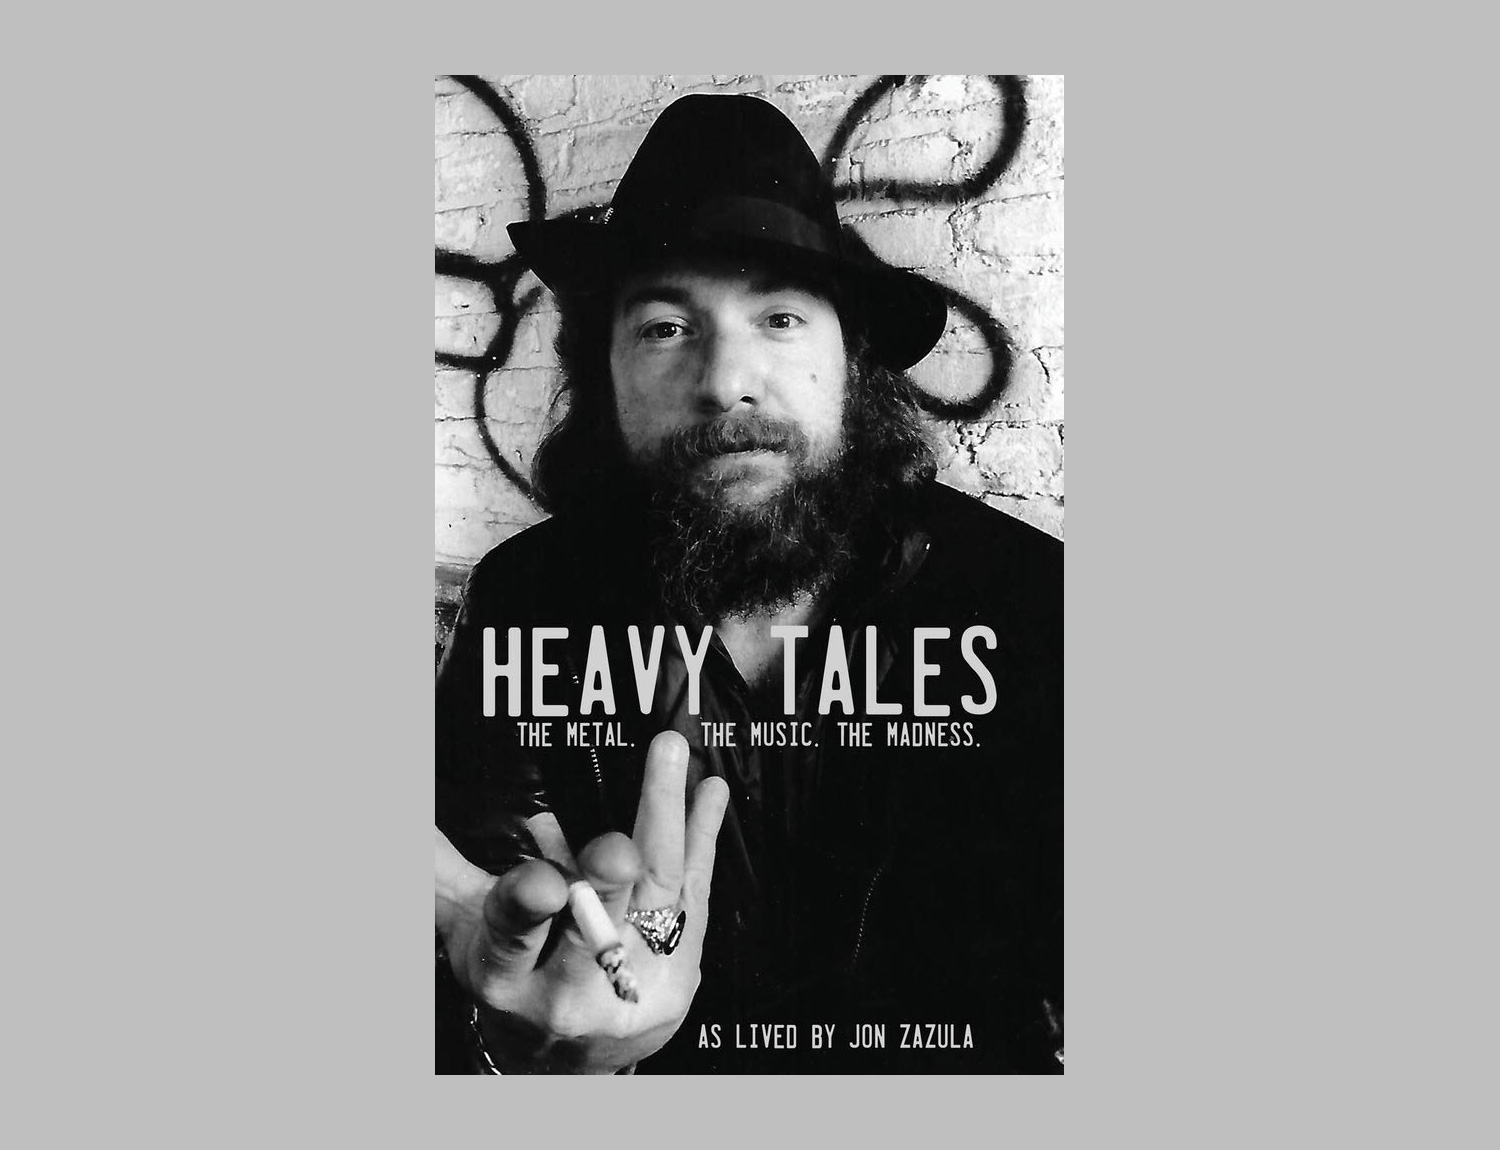 Heavy Tales: The Metal. The Music. The Madness. As lived by Jon Zazula at werd.com